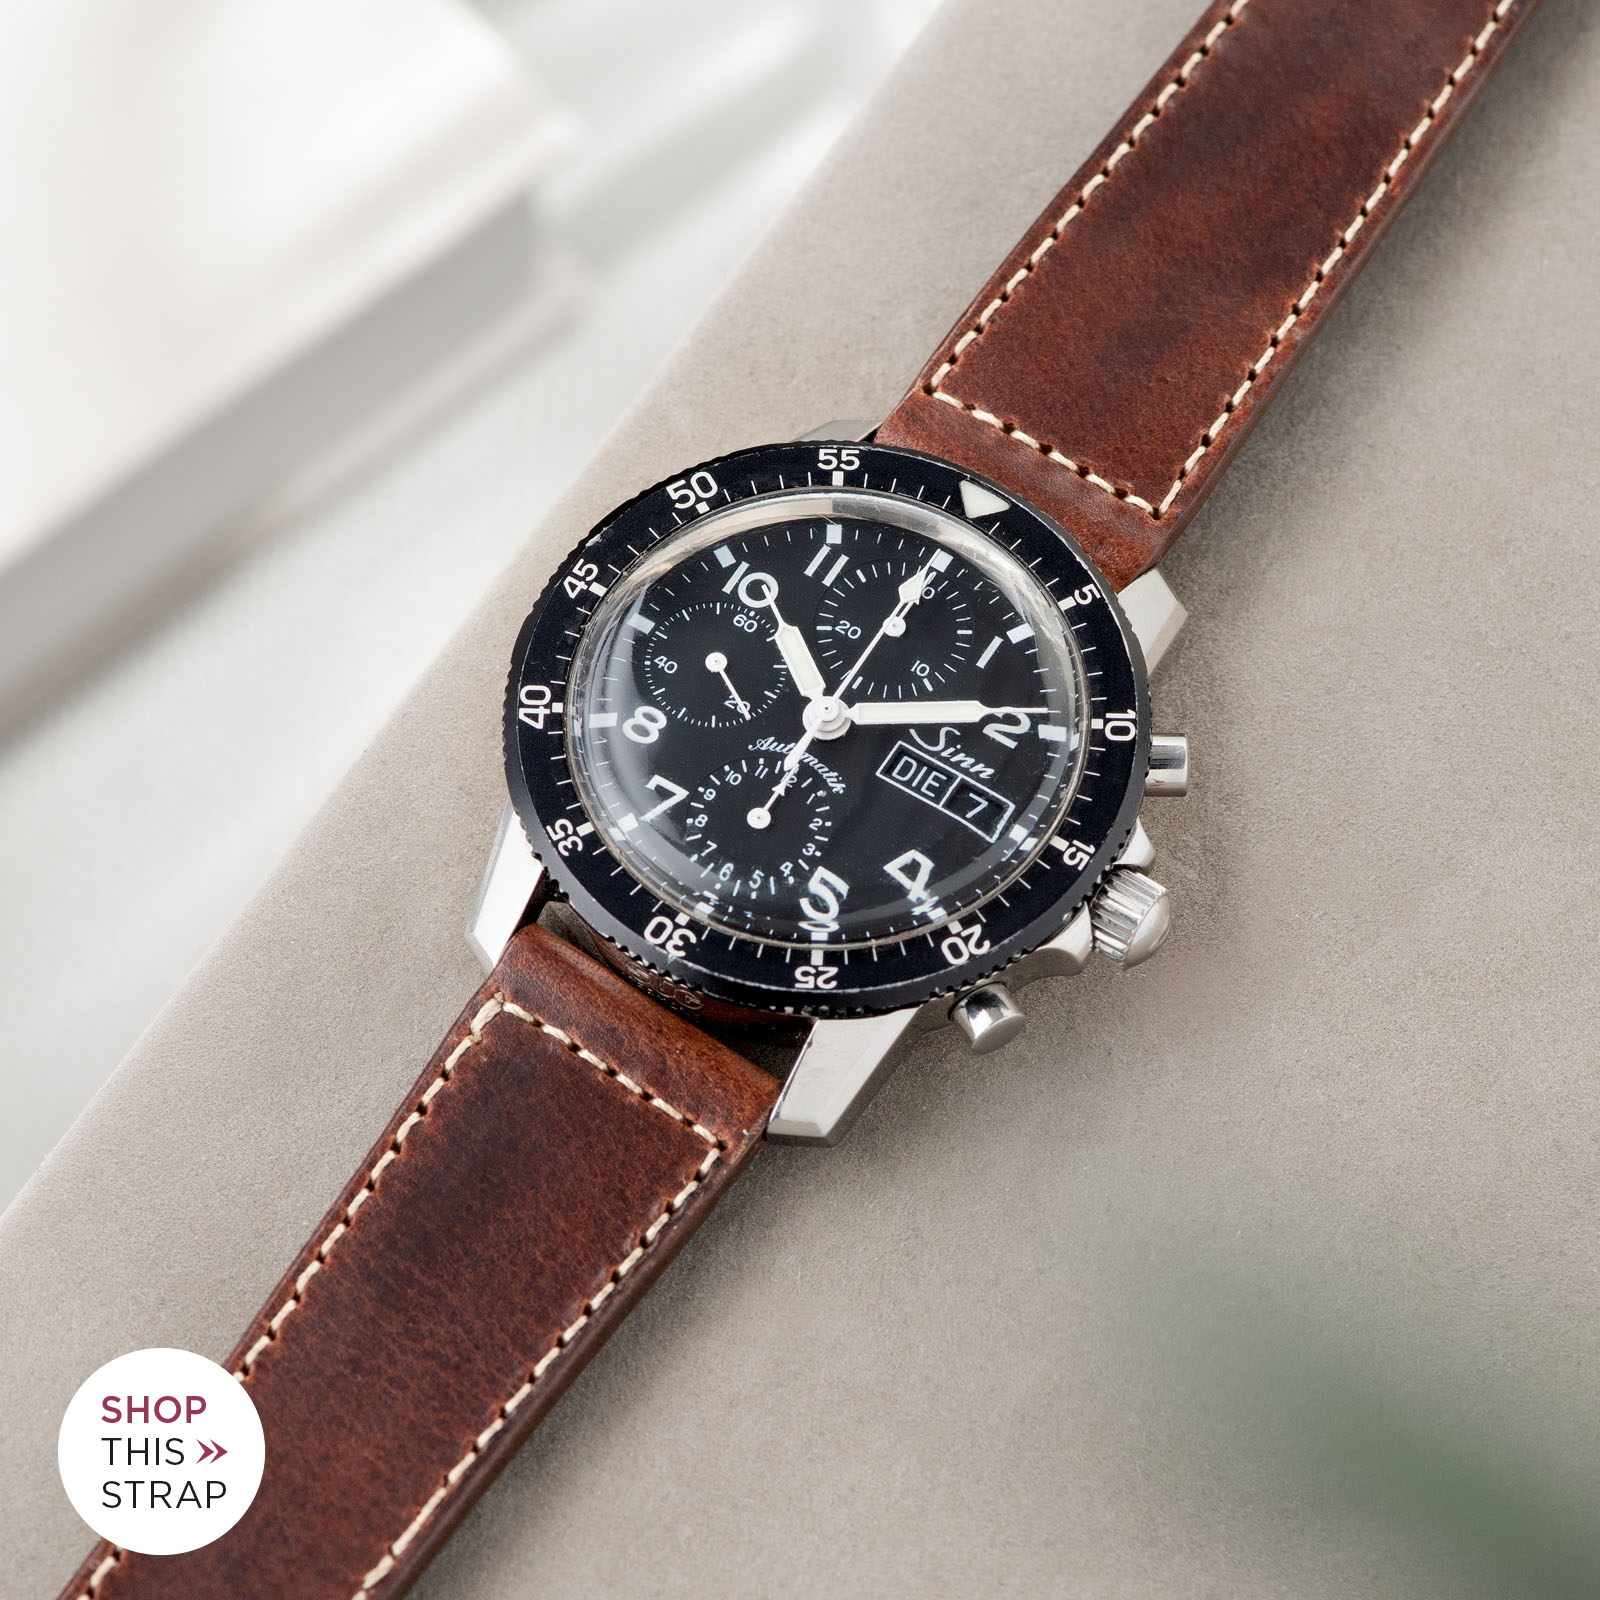 Bulang and Sons_Strap Guide_Sinn 103_Siena Brown Boxed Stitch Leather Watch Strap